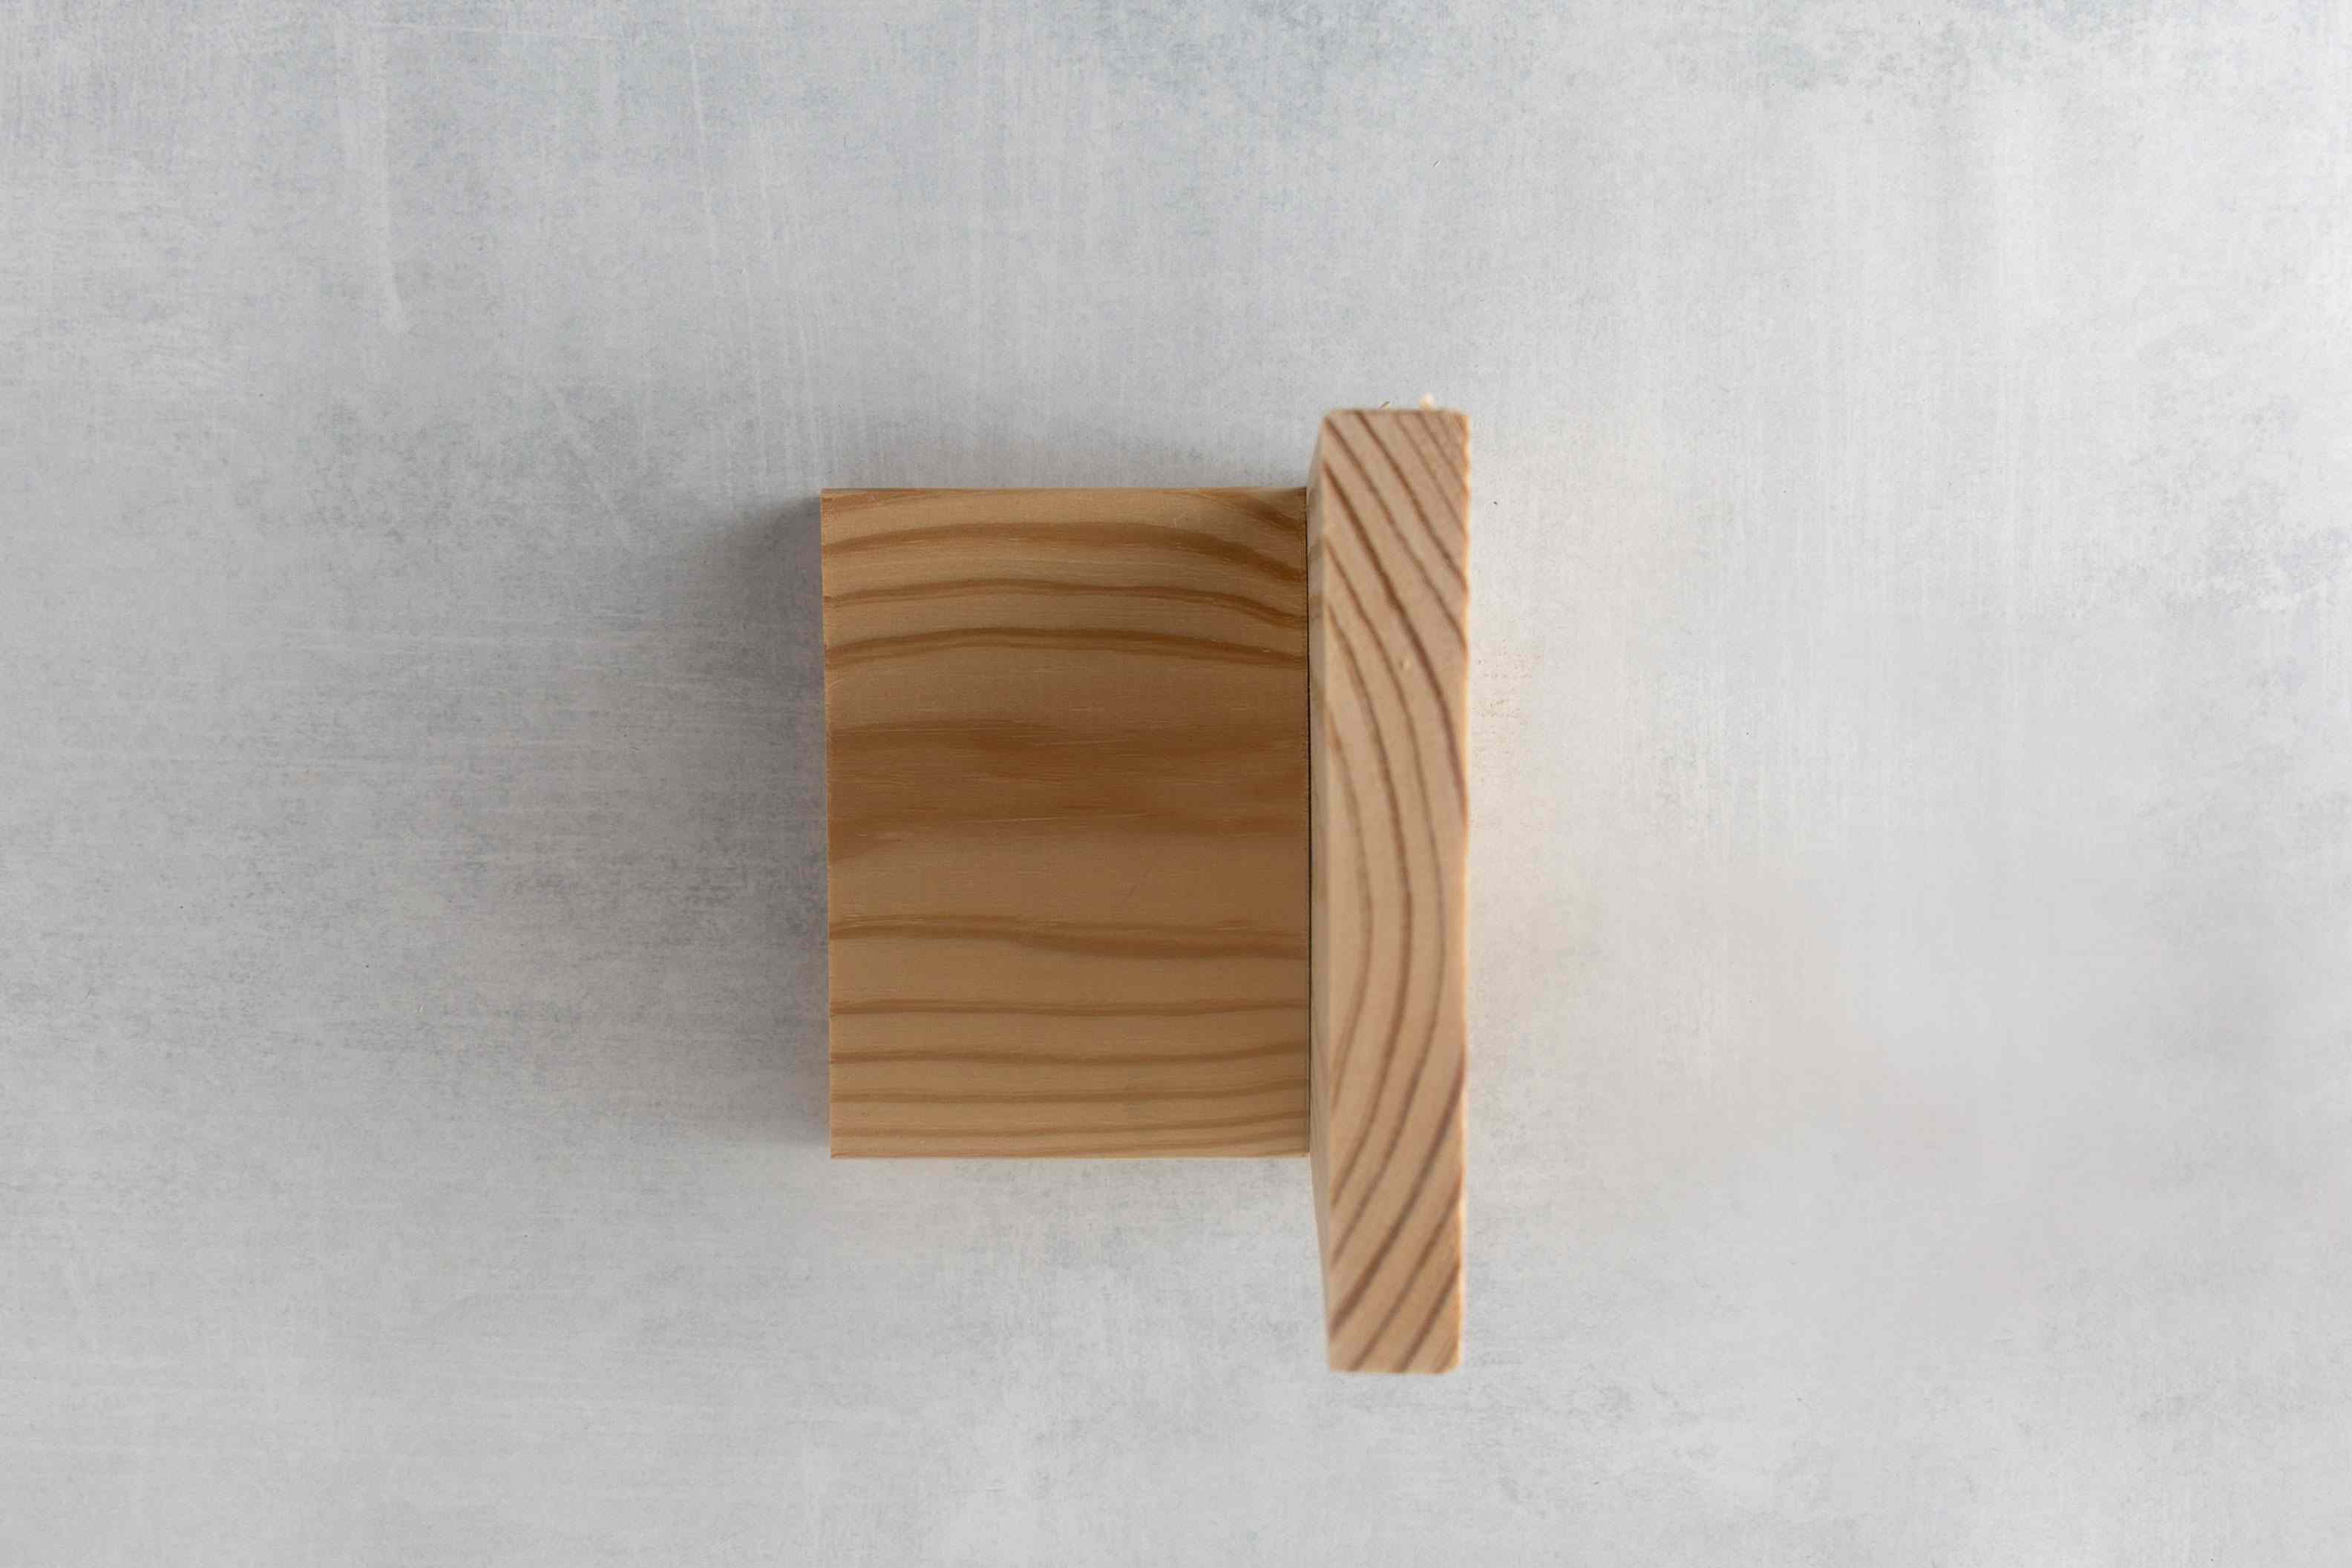 Two pine boards perpendicular to each other.